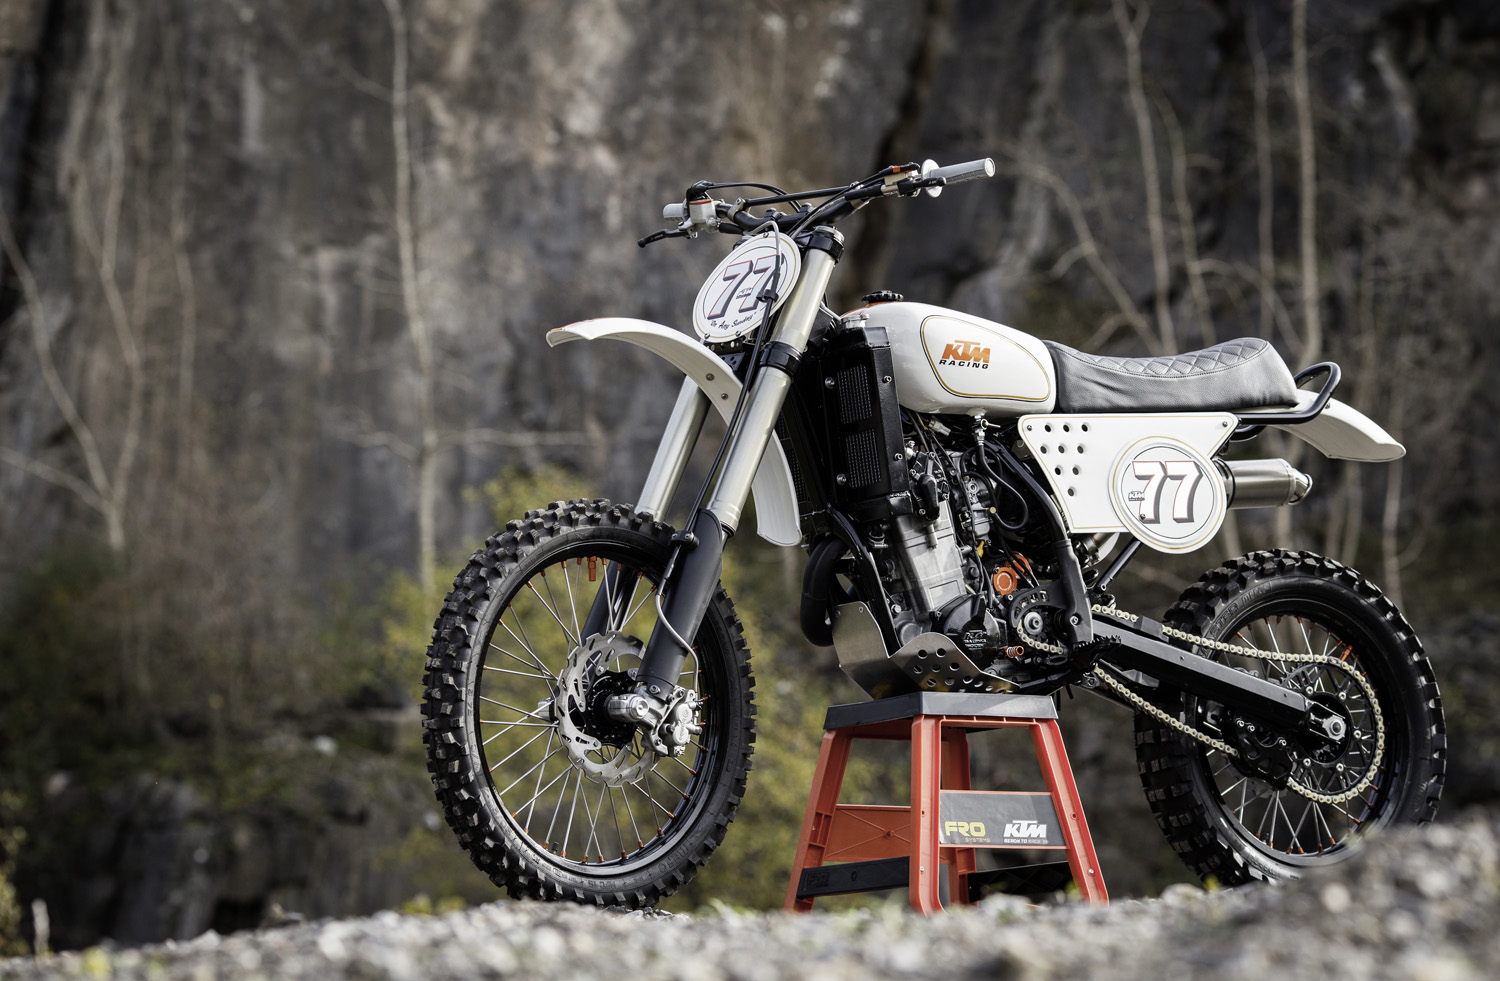 Inspired by old Maicos motocrossers and customer guru Roland Sands, Dan Ridge set to work on the shonky KTM clogging up his shed.